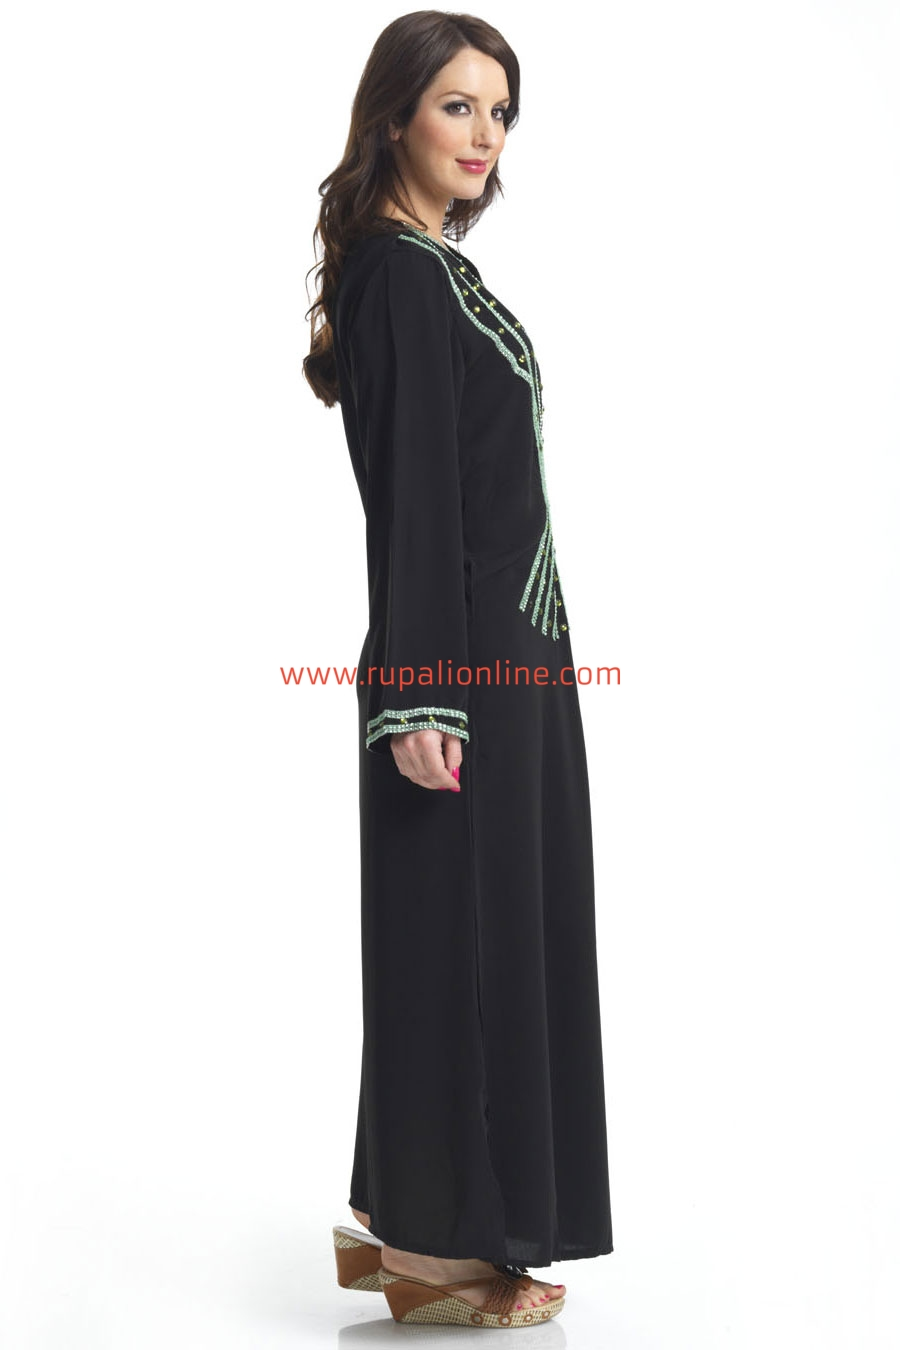 876673d5502b Kaftan Maxi Dresses Uk